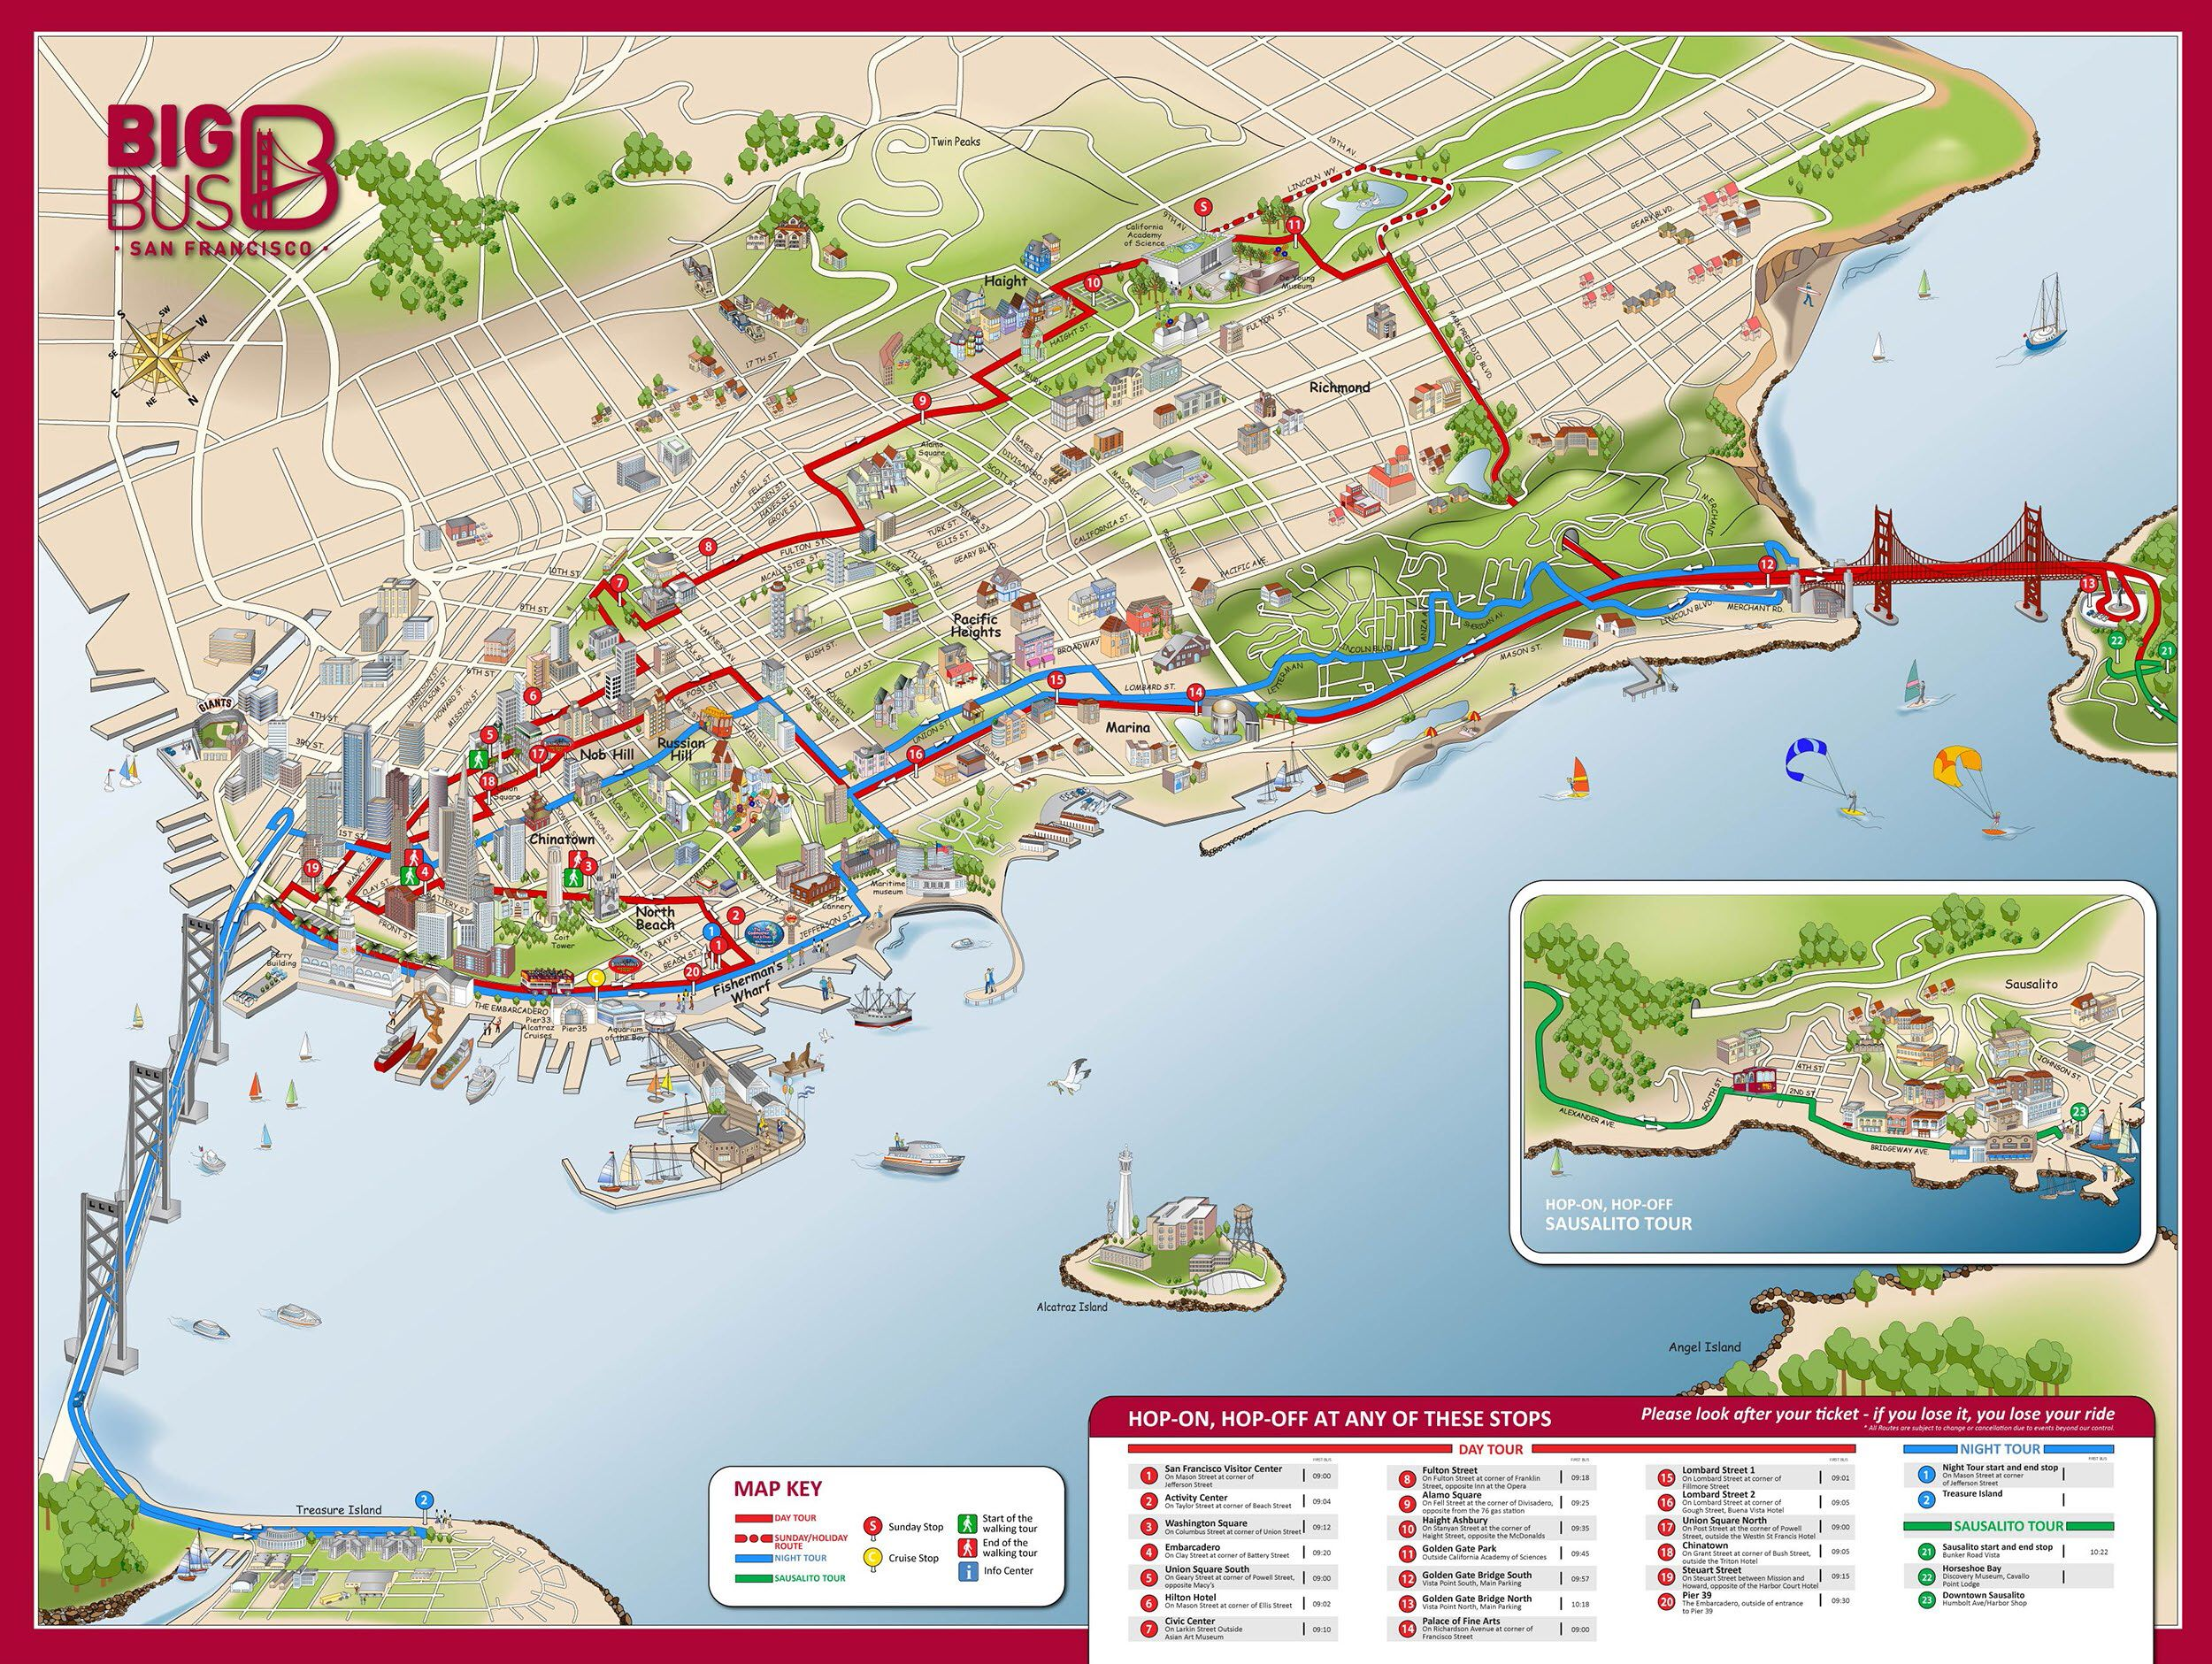 Image From HttpwwwmapwestcomimagessfopentopBigBusTours - Map san francisco bus routes